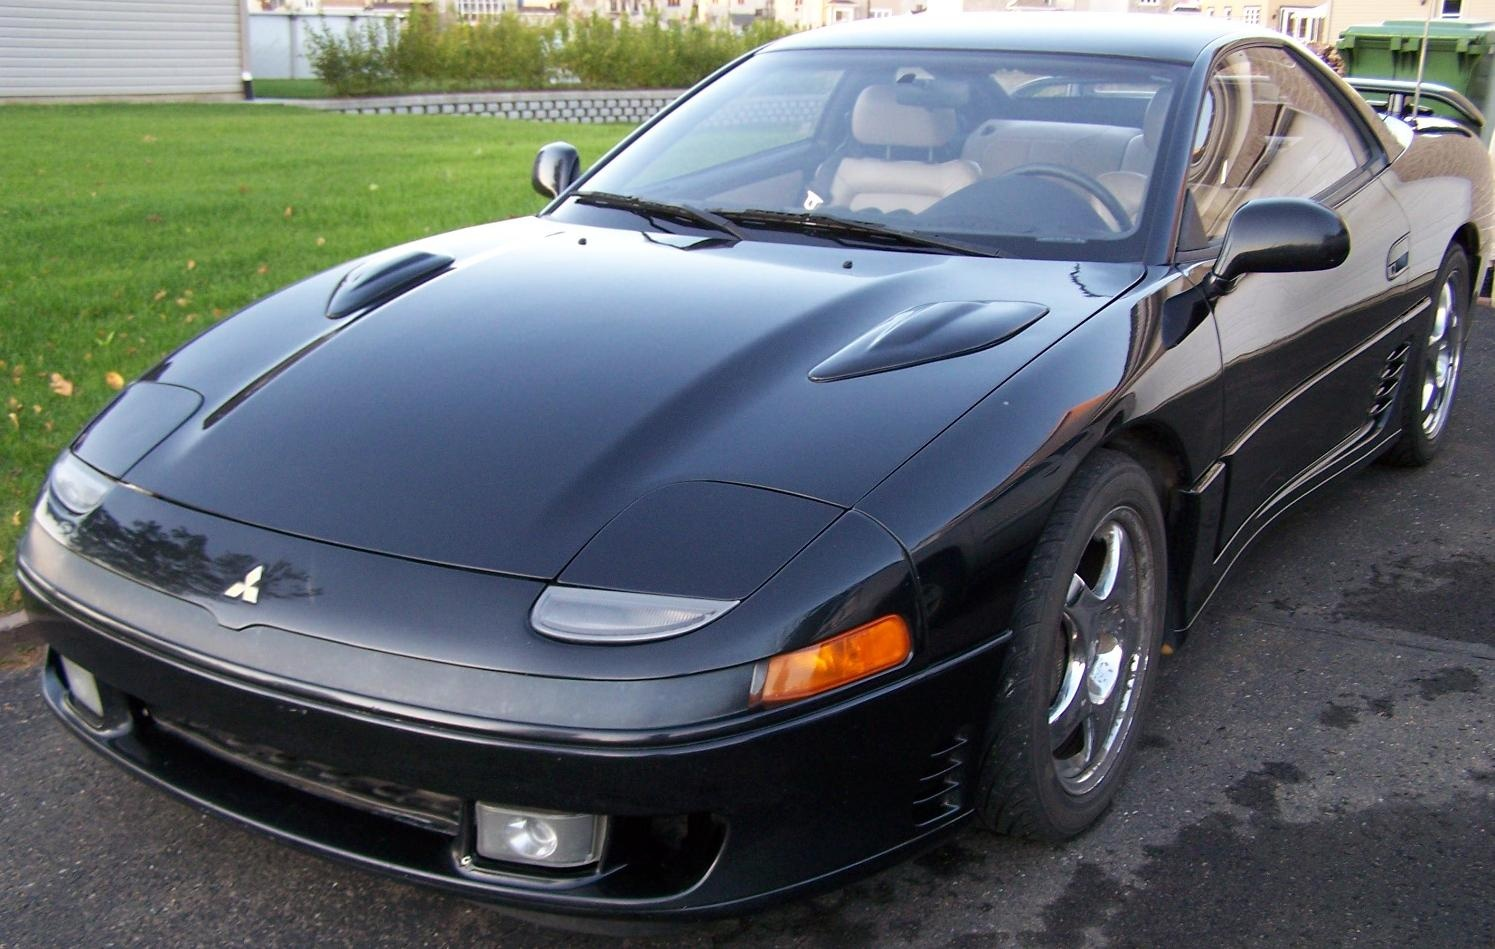 Mitsubishi 3000gt Questions A Good Car Or Not Cargurus